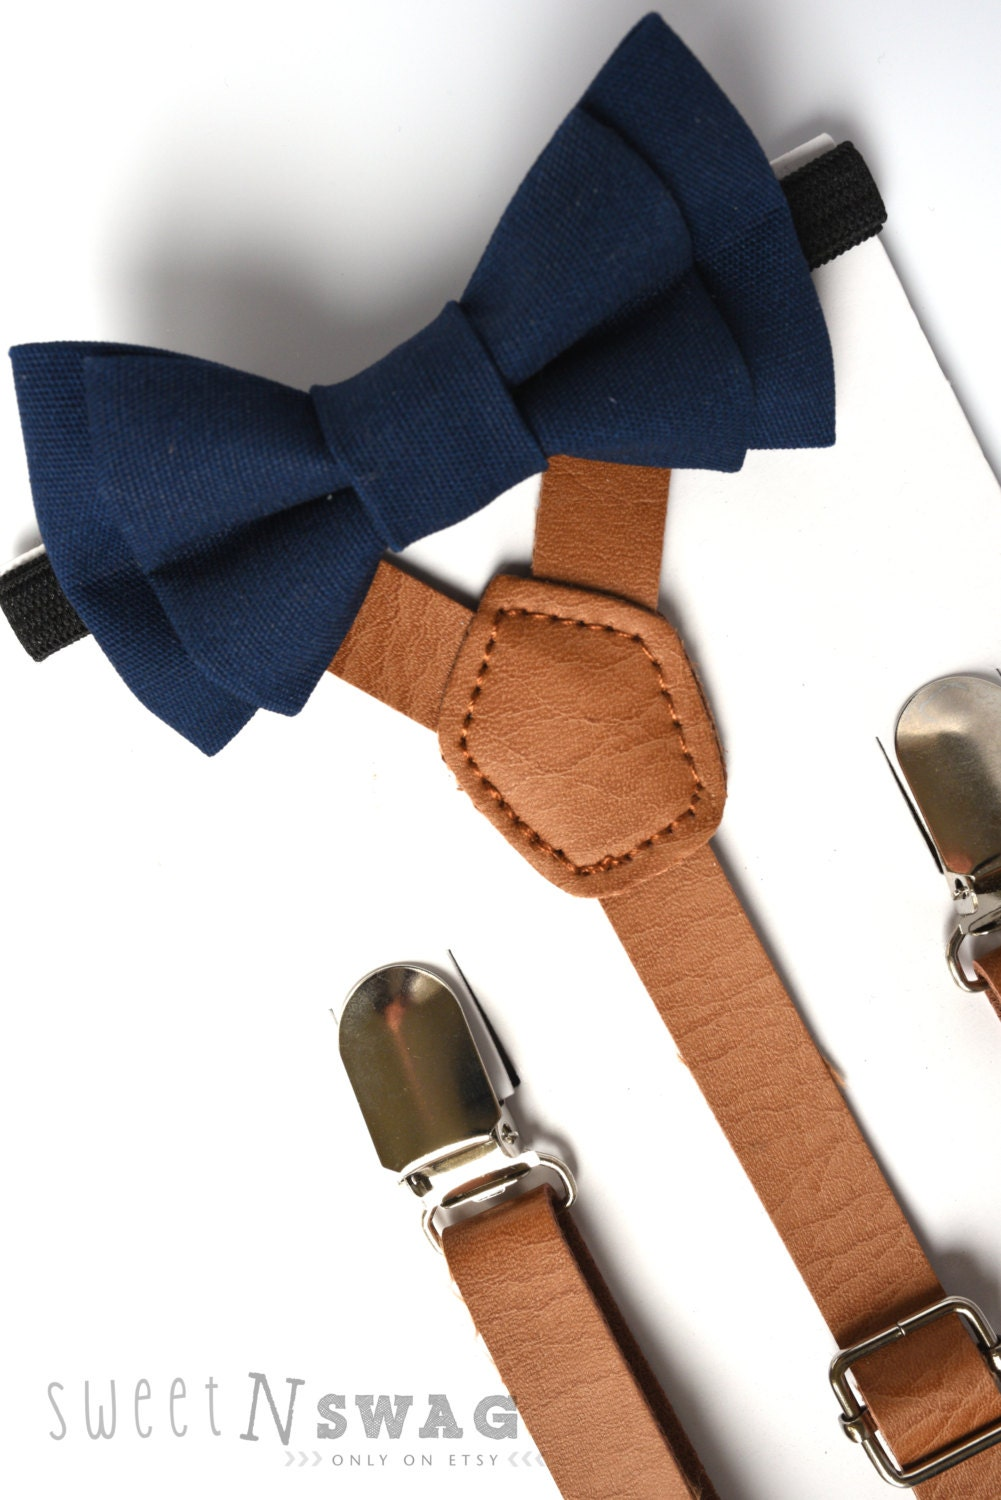 our suspender sizes are the length of the suspender (in inches), fully let out. ACTUAL MEASURING METHOD (recommended when buying Leather Suspenders or Child's Suspender, especially): Measure the distance from side-back waistline of pants for X-back, center-back waistline for Y-back, diagonally over the shoulder, to front waistline.